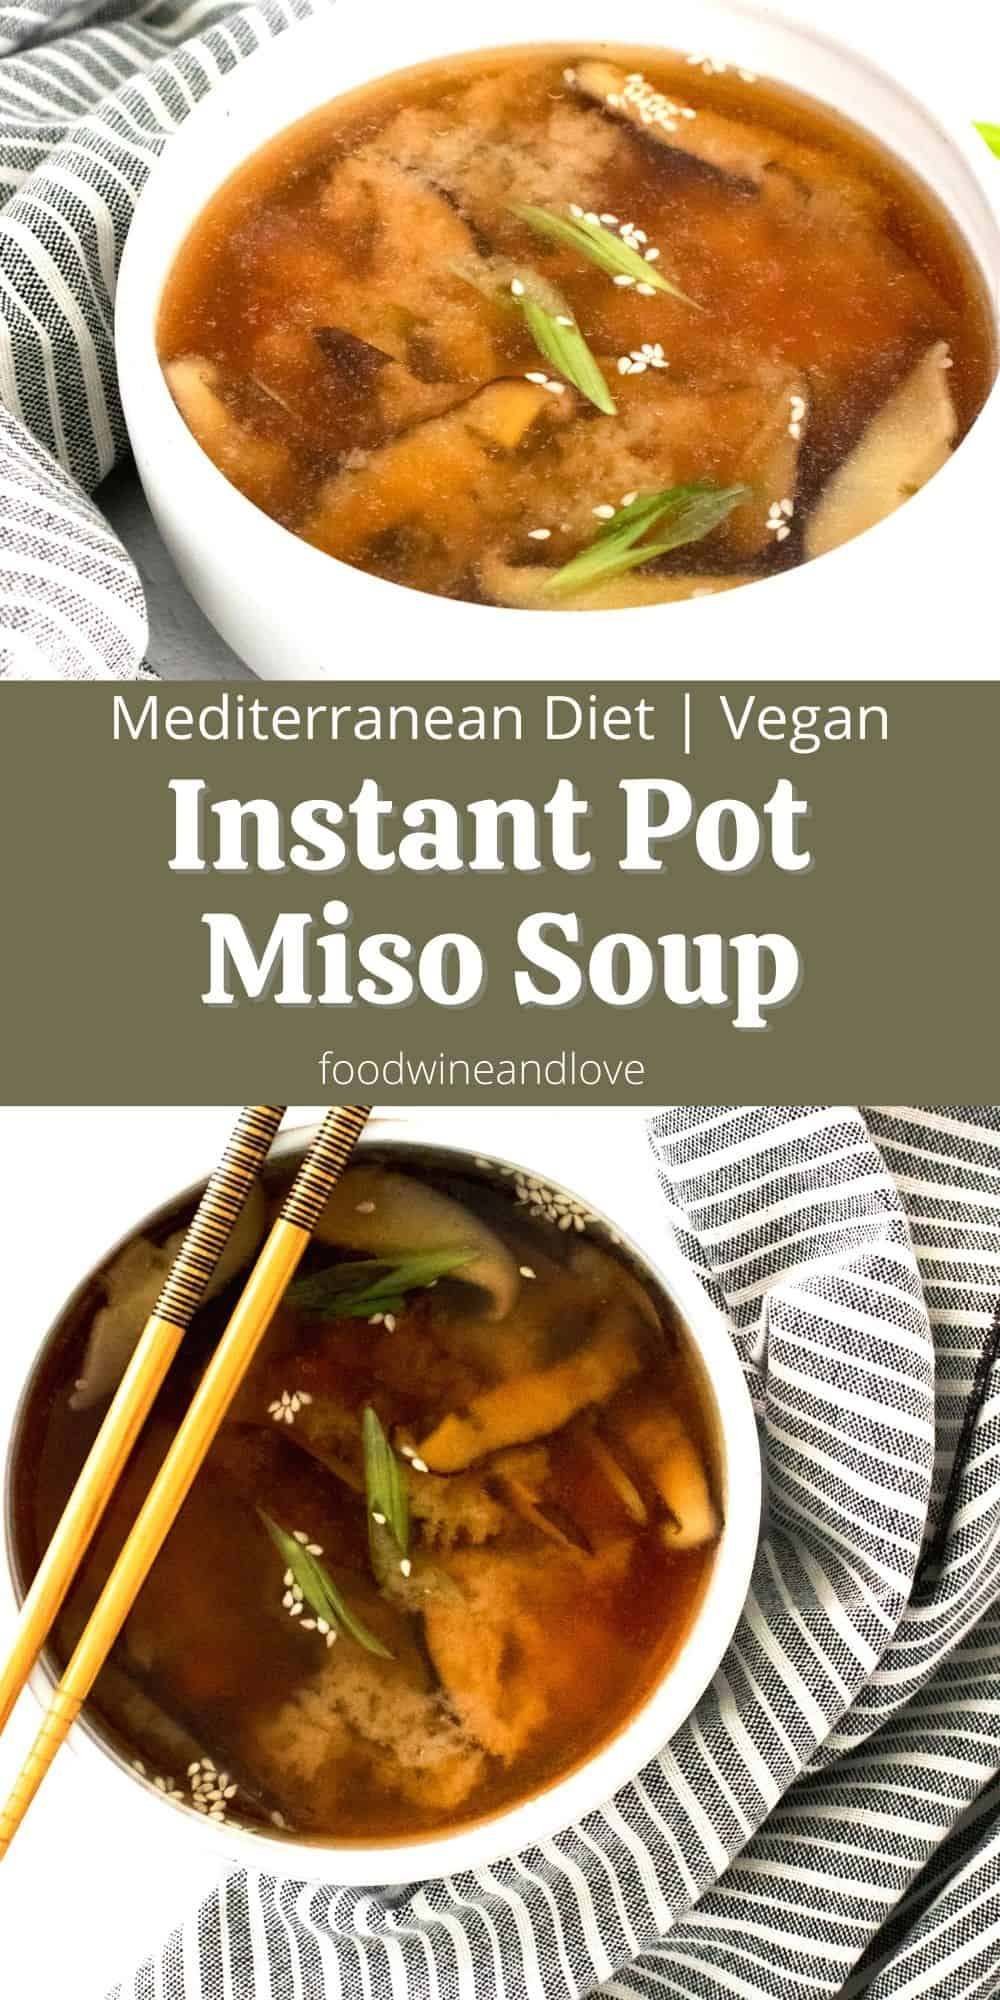 IInstant Pot Miso Soup, a delicious and simple vegan recipe for homemade soup that can be made in a pressure cooker pot.